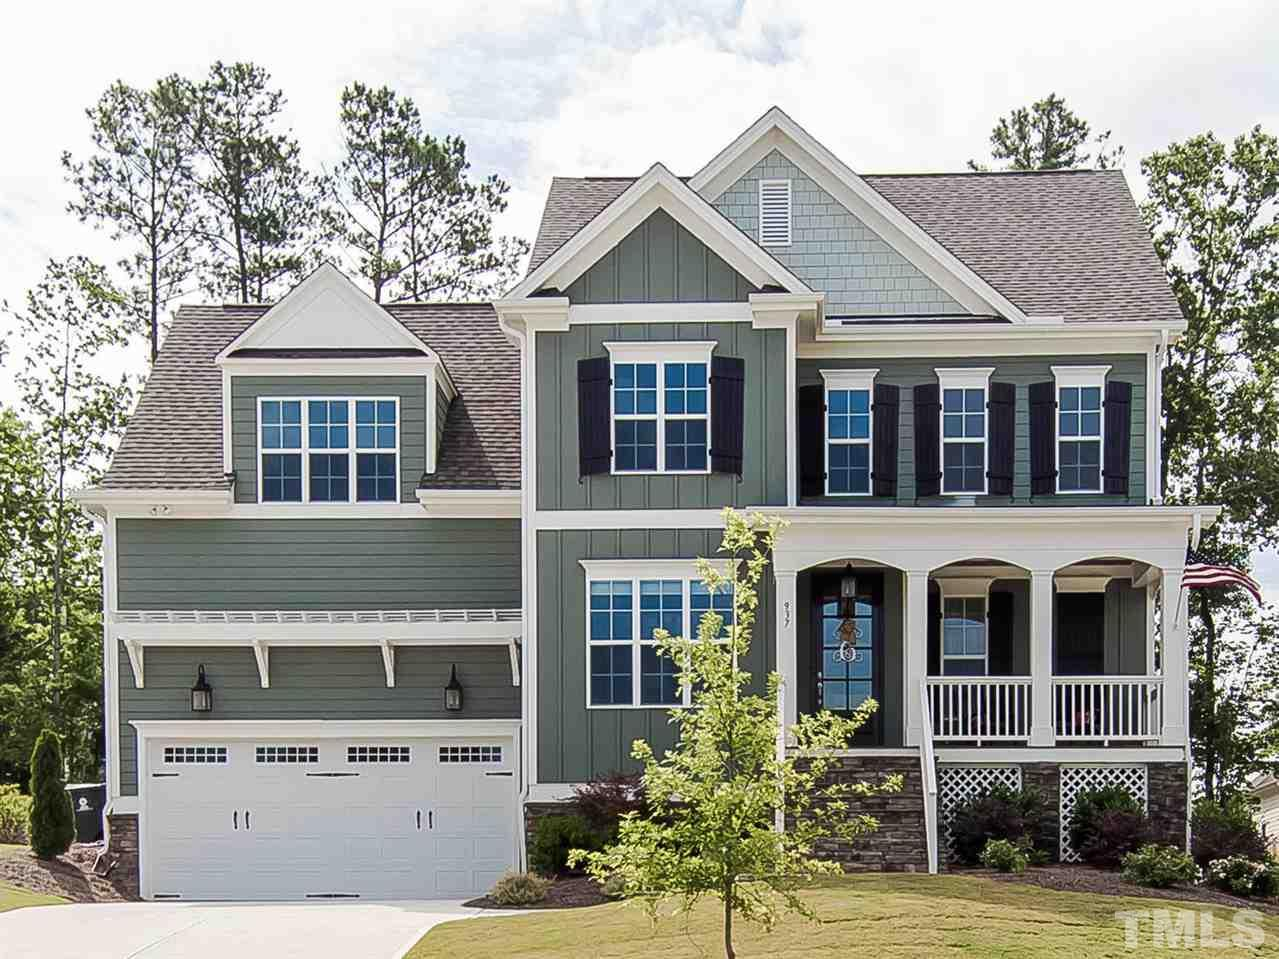 937 Hollymont Drive, Holly Springs, NC 27540